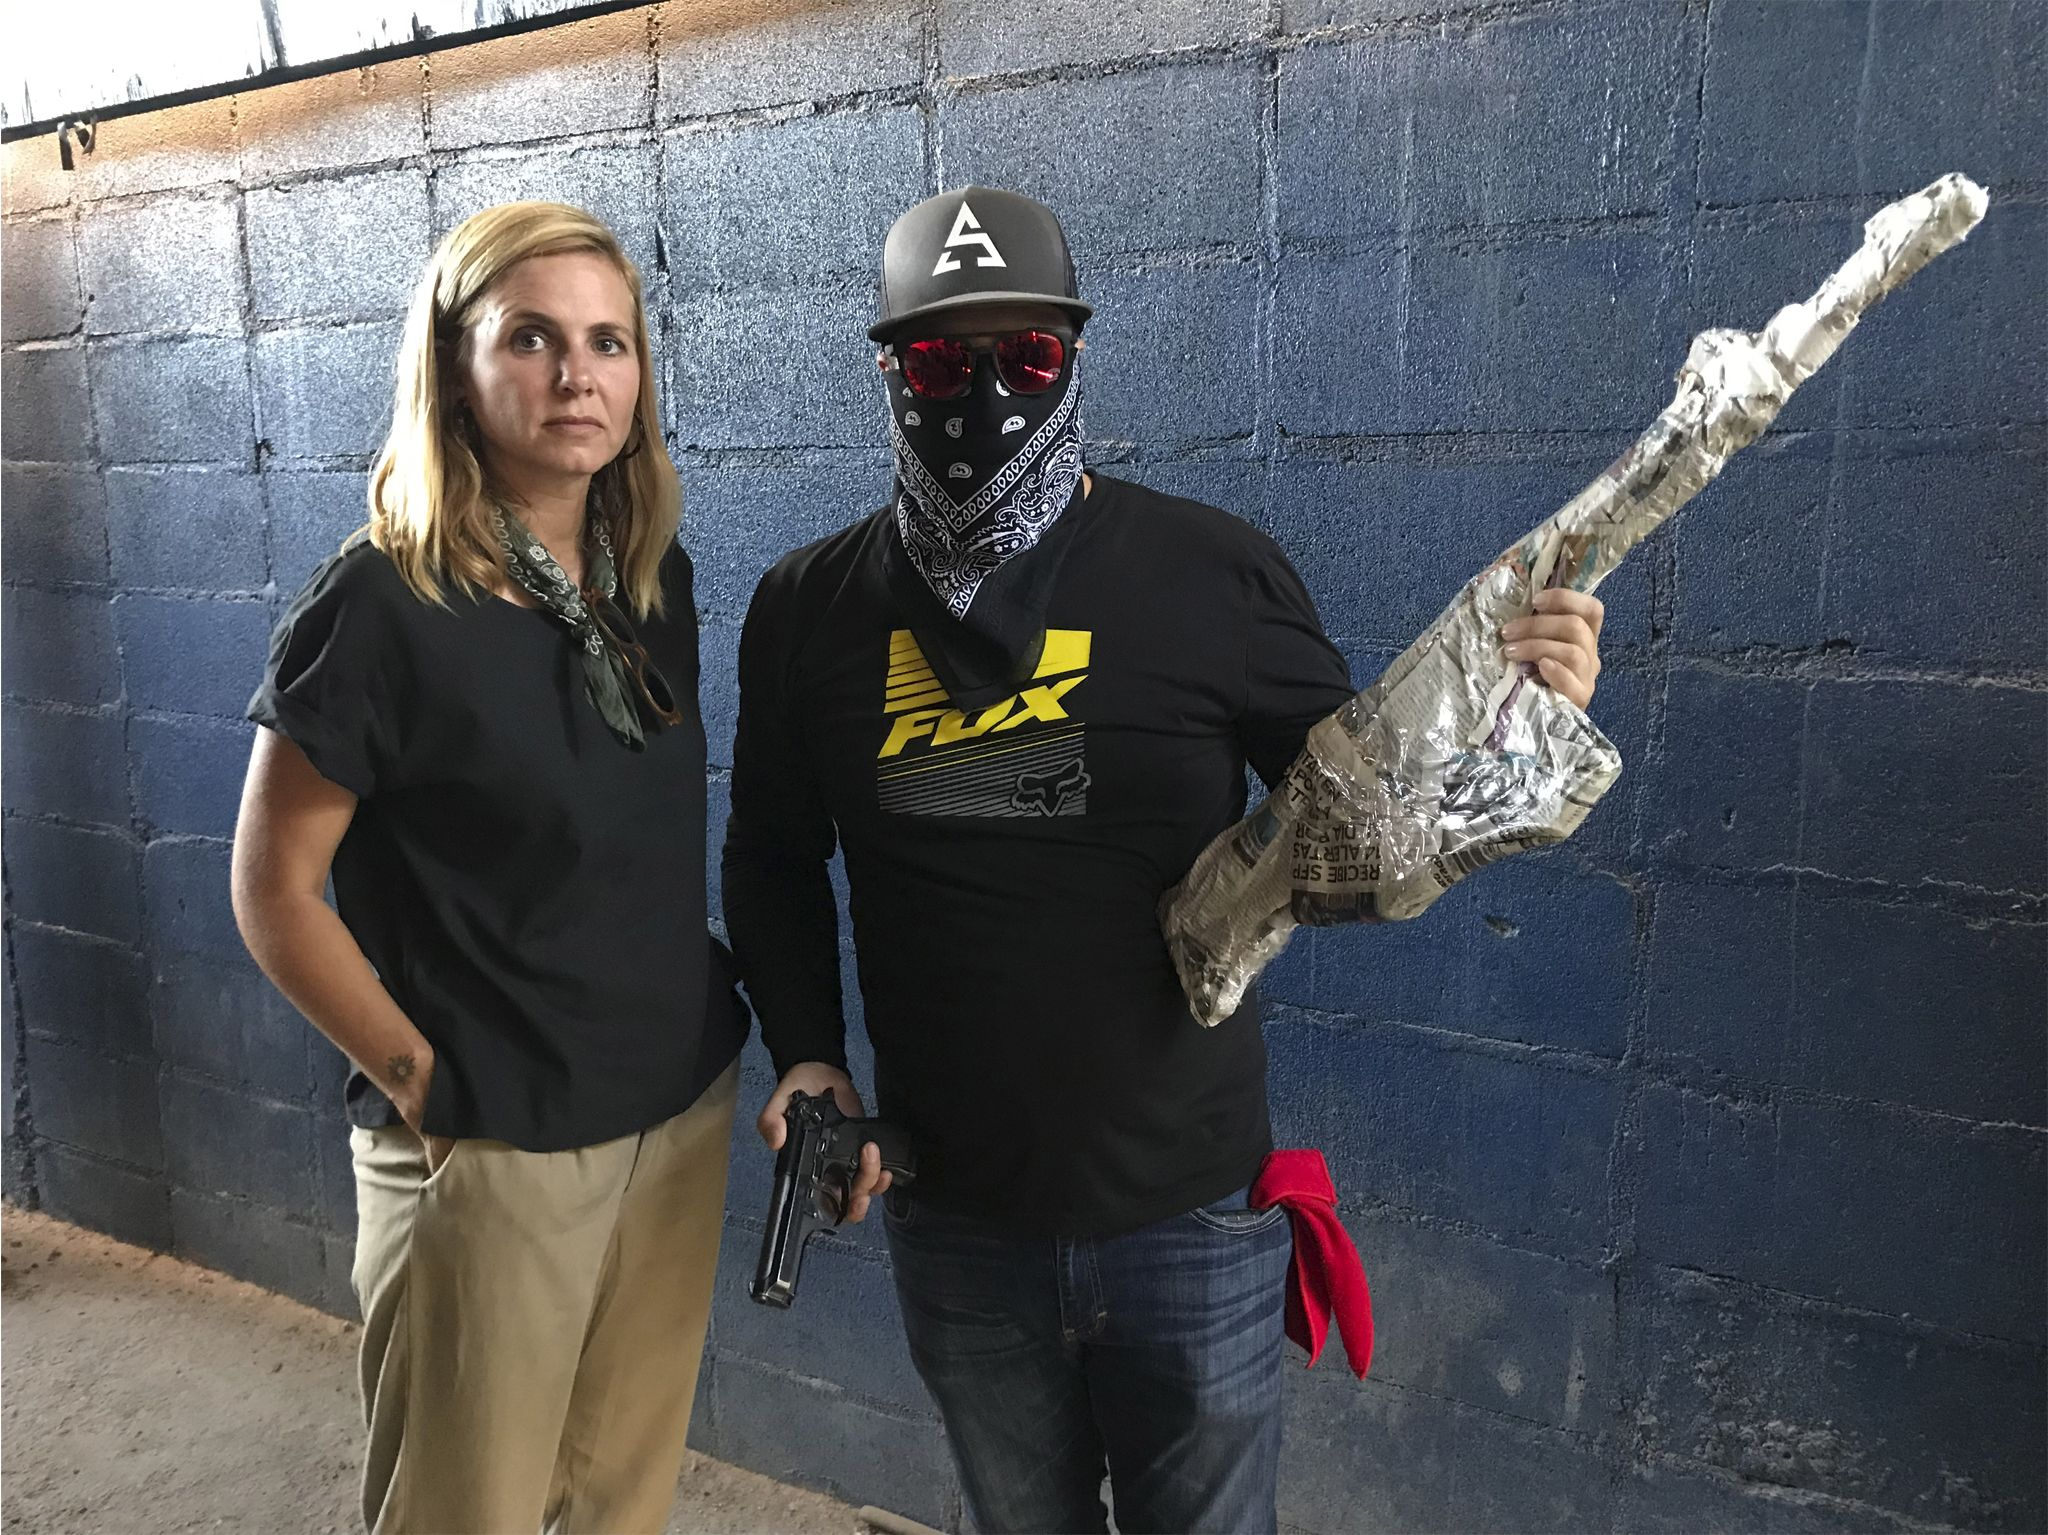 Mariana van Zeller (L) with a gun runner for the Sinaloa Cartel as he holds an automatic weapon... [Photo of the day - January 2021]